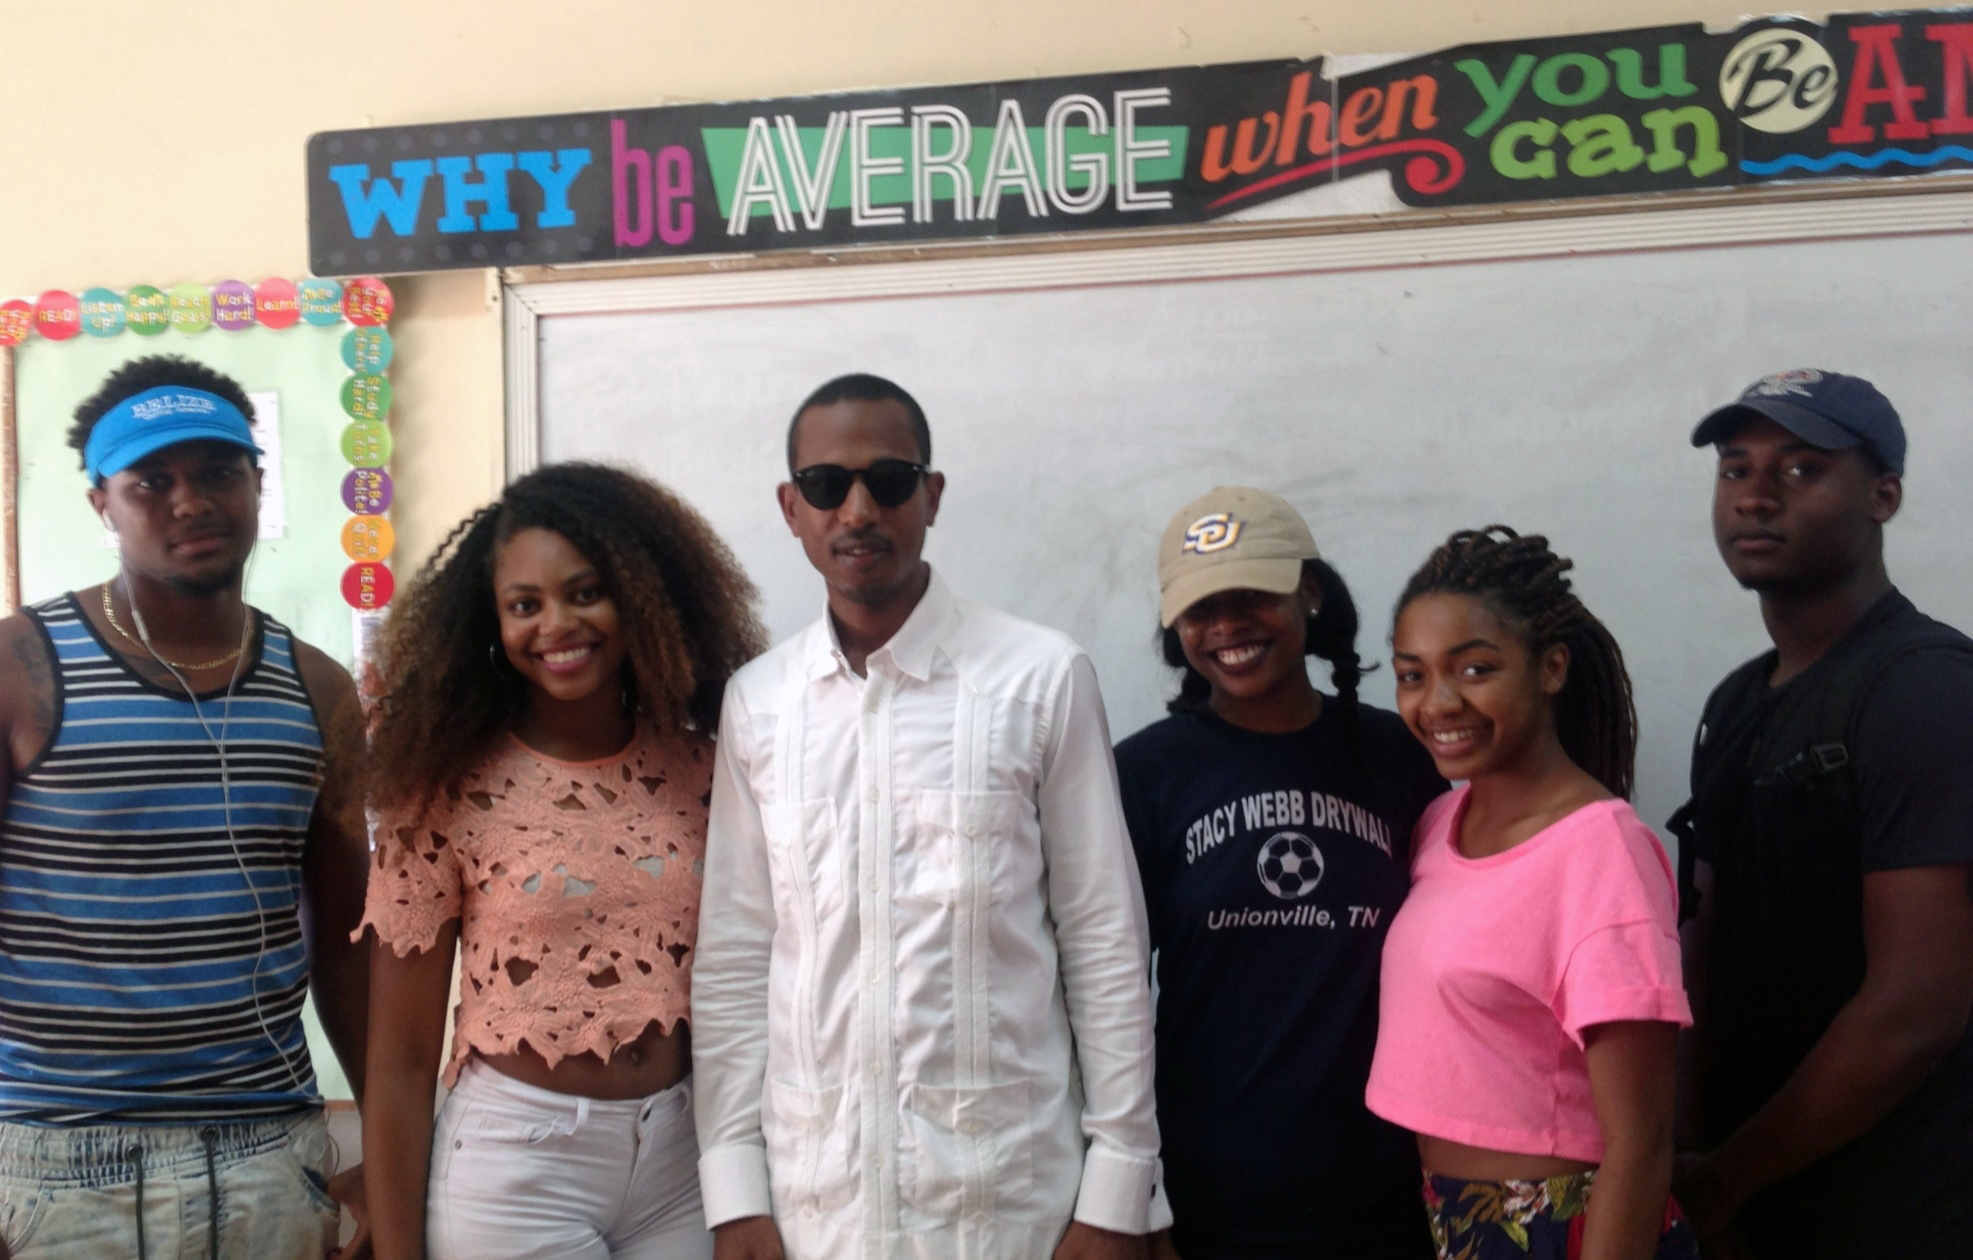 A group of SU Baton Rouge students recently returned from a three-week study abroad program in Belize, Central America. Pictured at Wesley Junior College in Belize are (left to right) SUBR students Jeremiah West and Alana Stevenson, international rap artist Shyne, and SUBR students Raven Buntyn, Janae McGee, and Zachary Williams. —Photo Eric Pugh.